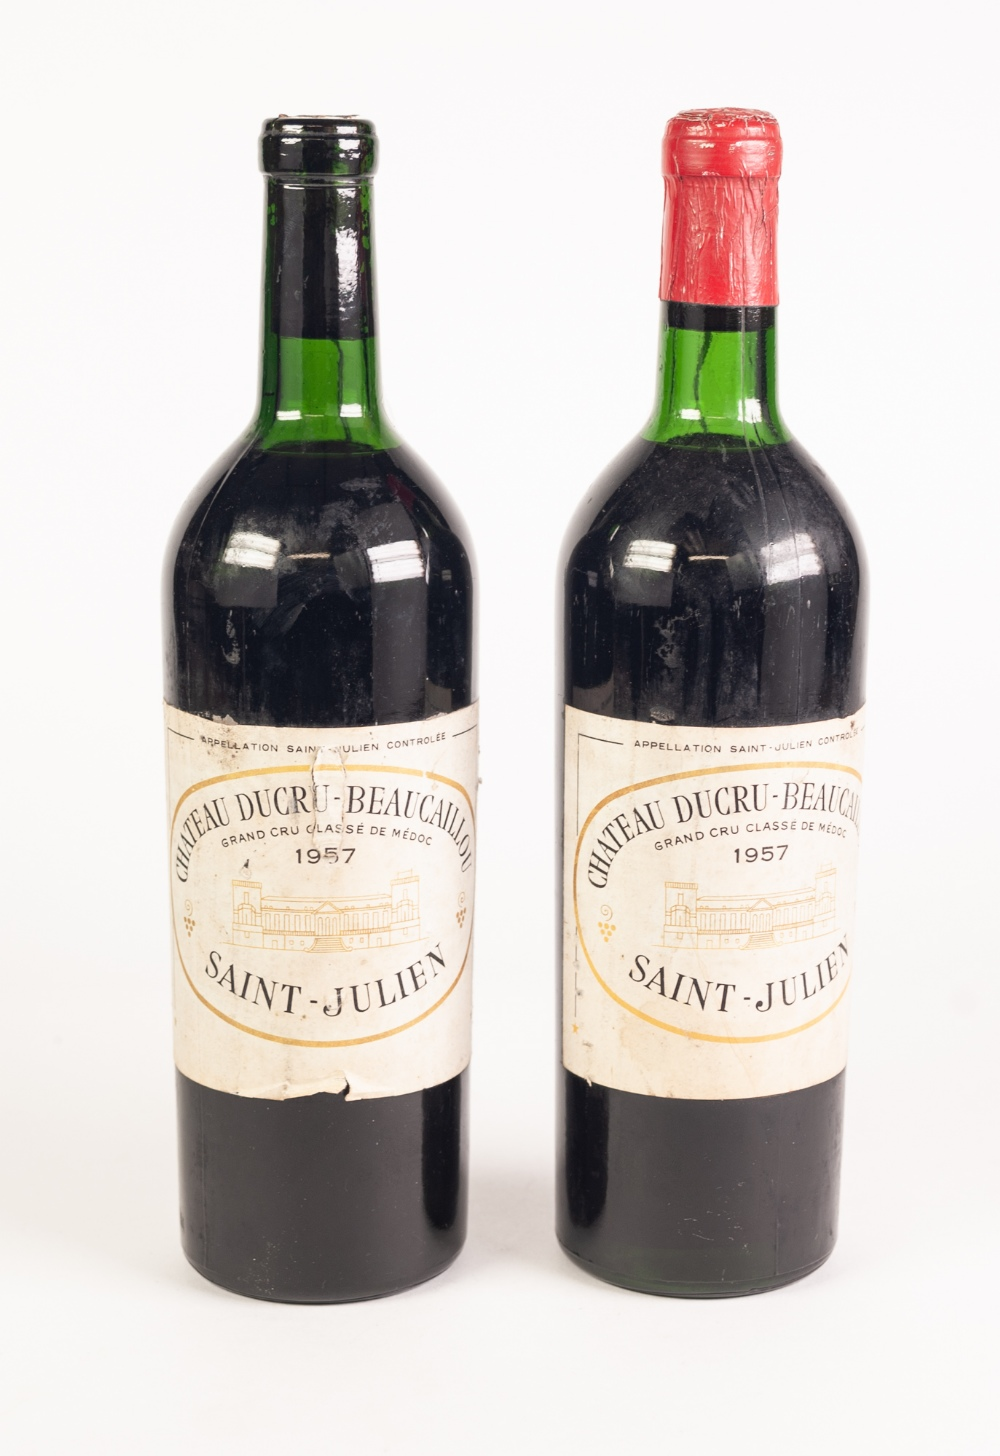 Lot 49 - TWO BOTTLES OF CHATEAU DUCRU-BEAUCAILLOU SAINT-JULIEN 1957 MEDOC RED WINE (one with red foil absent)